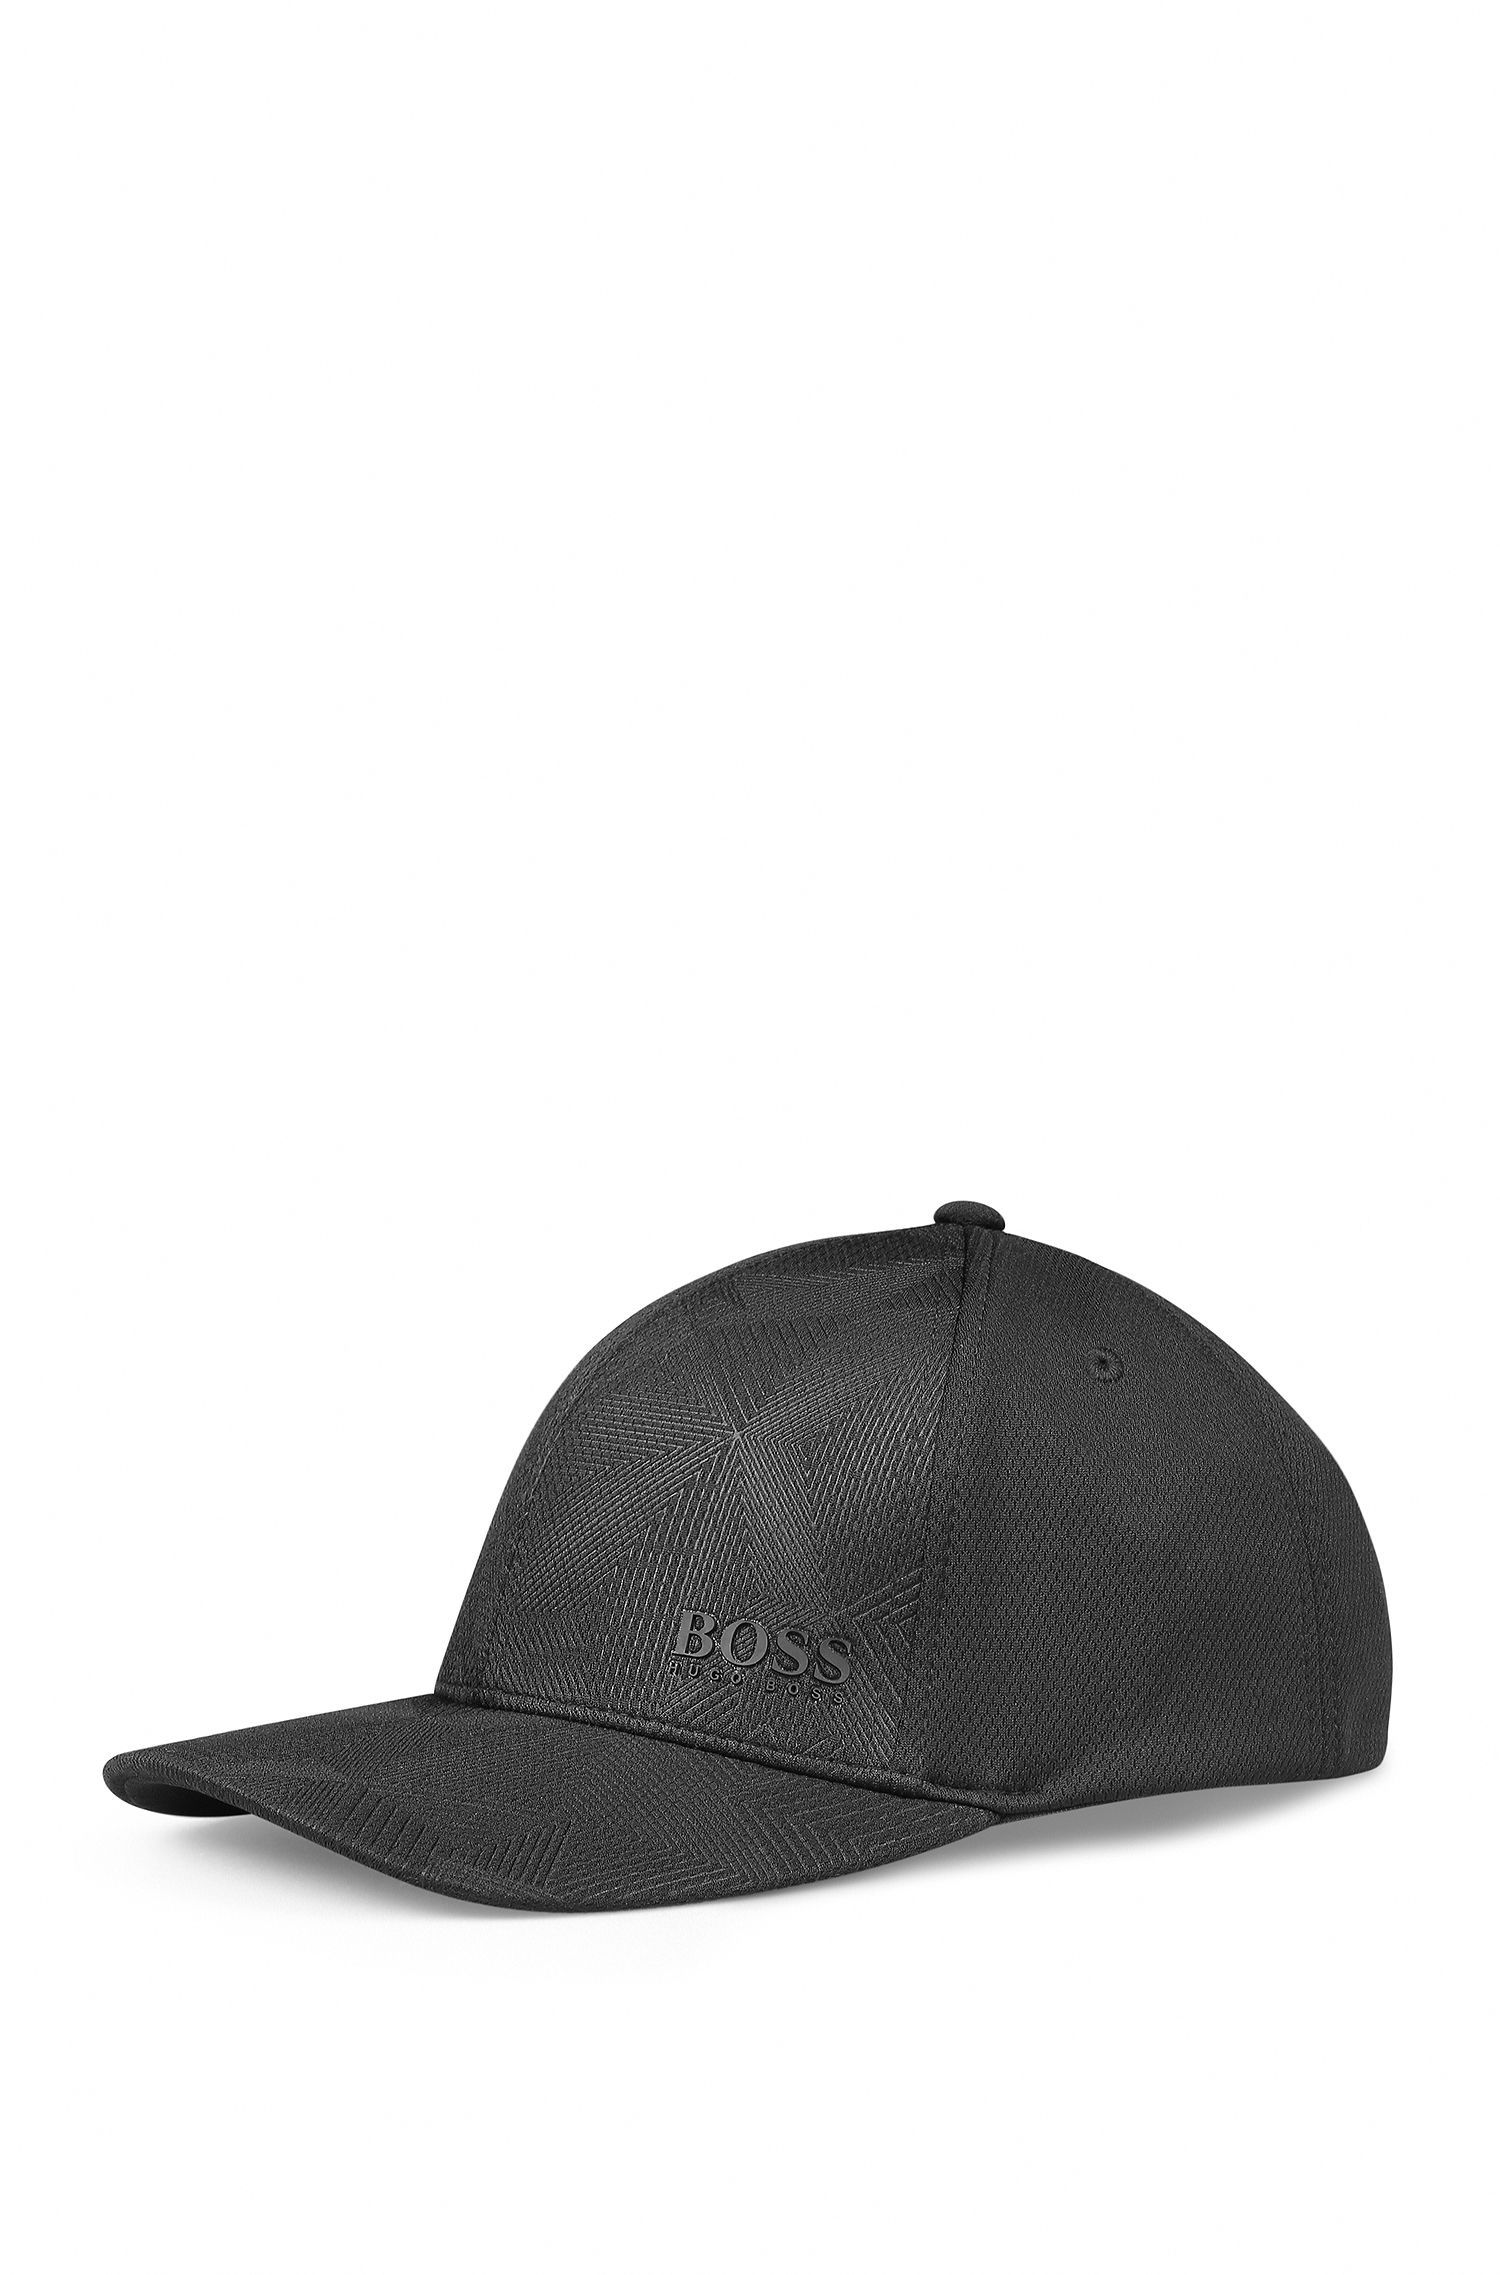 Baseball cap in honeycomb technical fabric